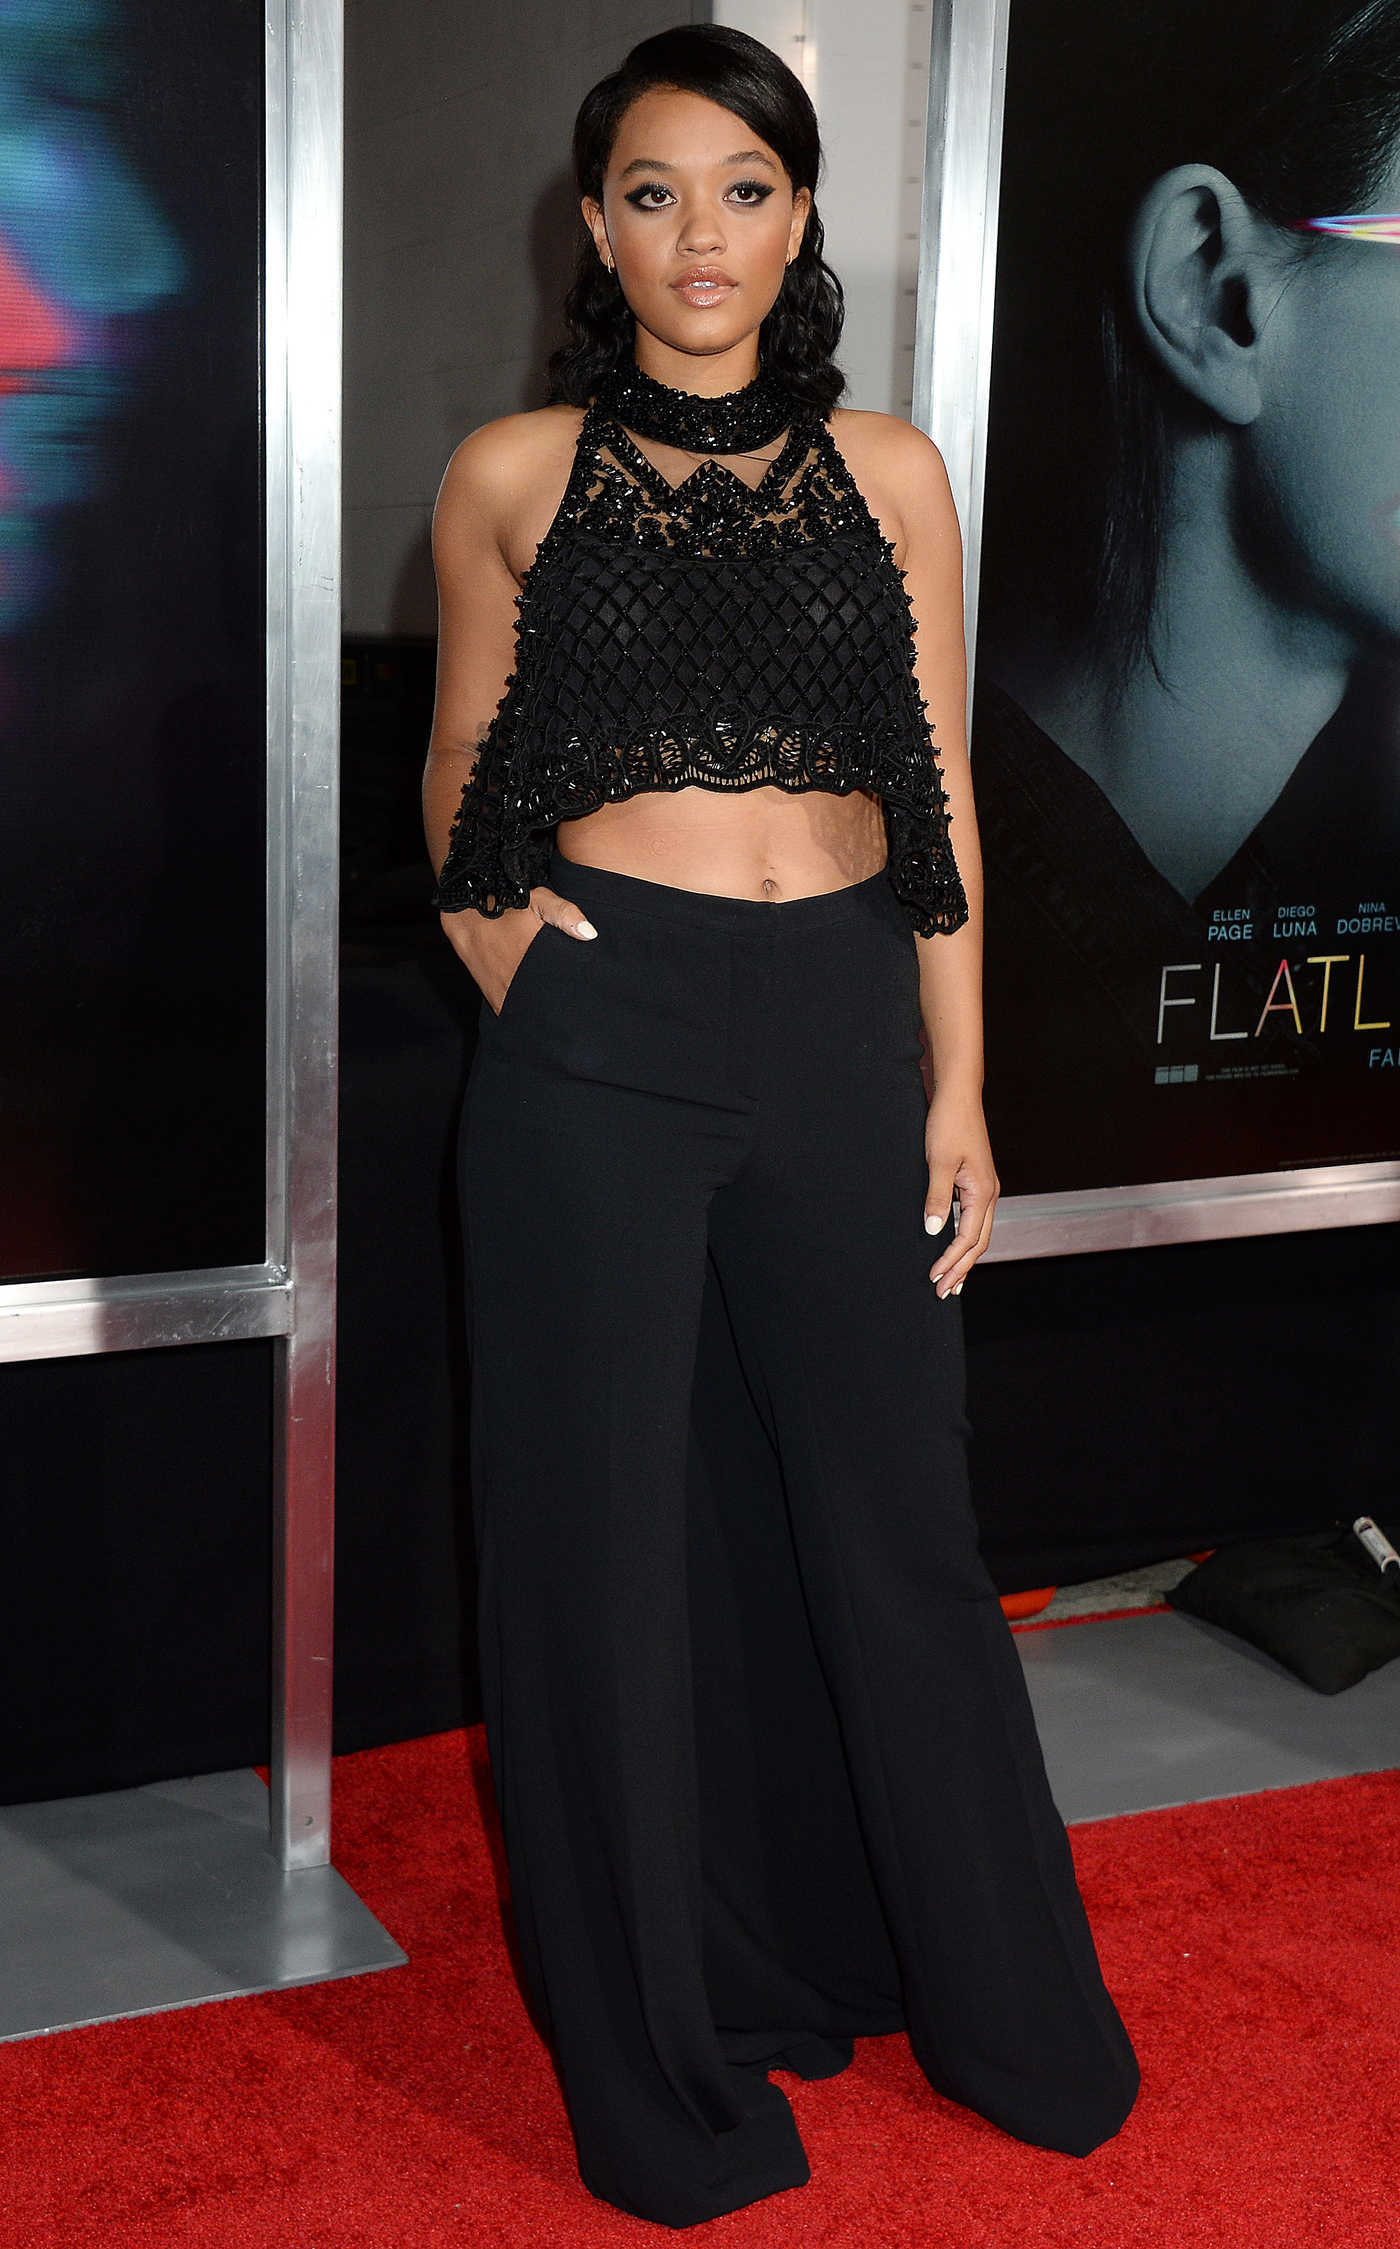 Kiersey Clemons at the Flatliners Premiere in Los Angeles 09/27/2017